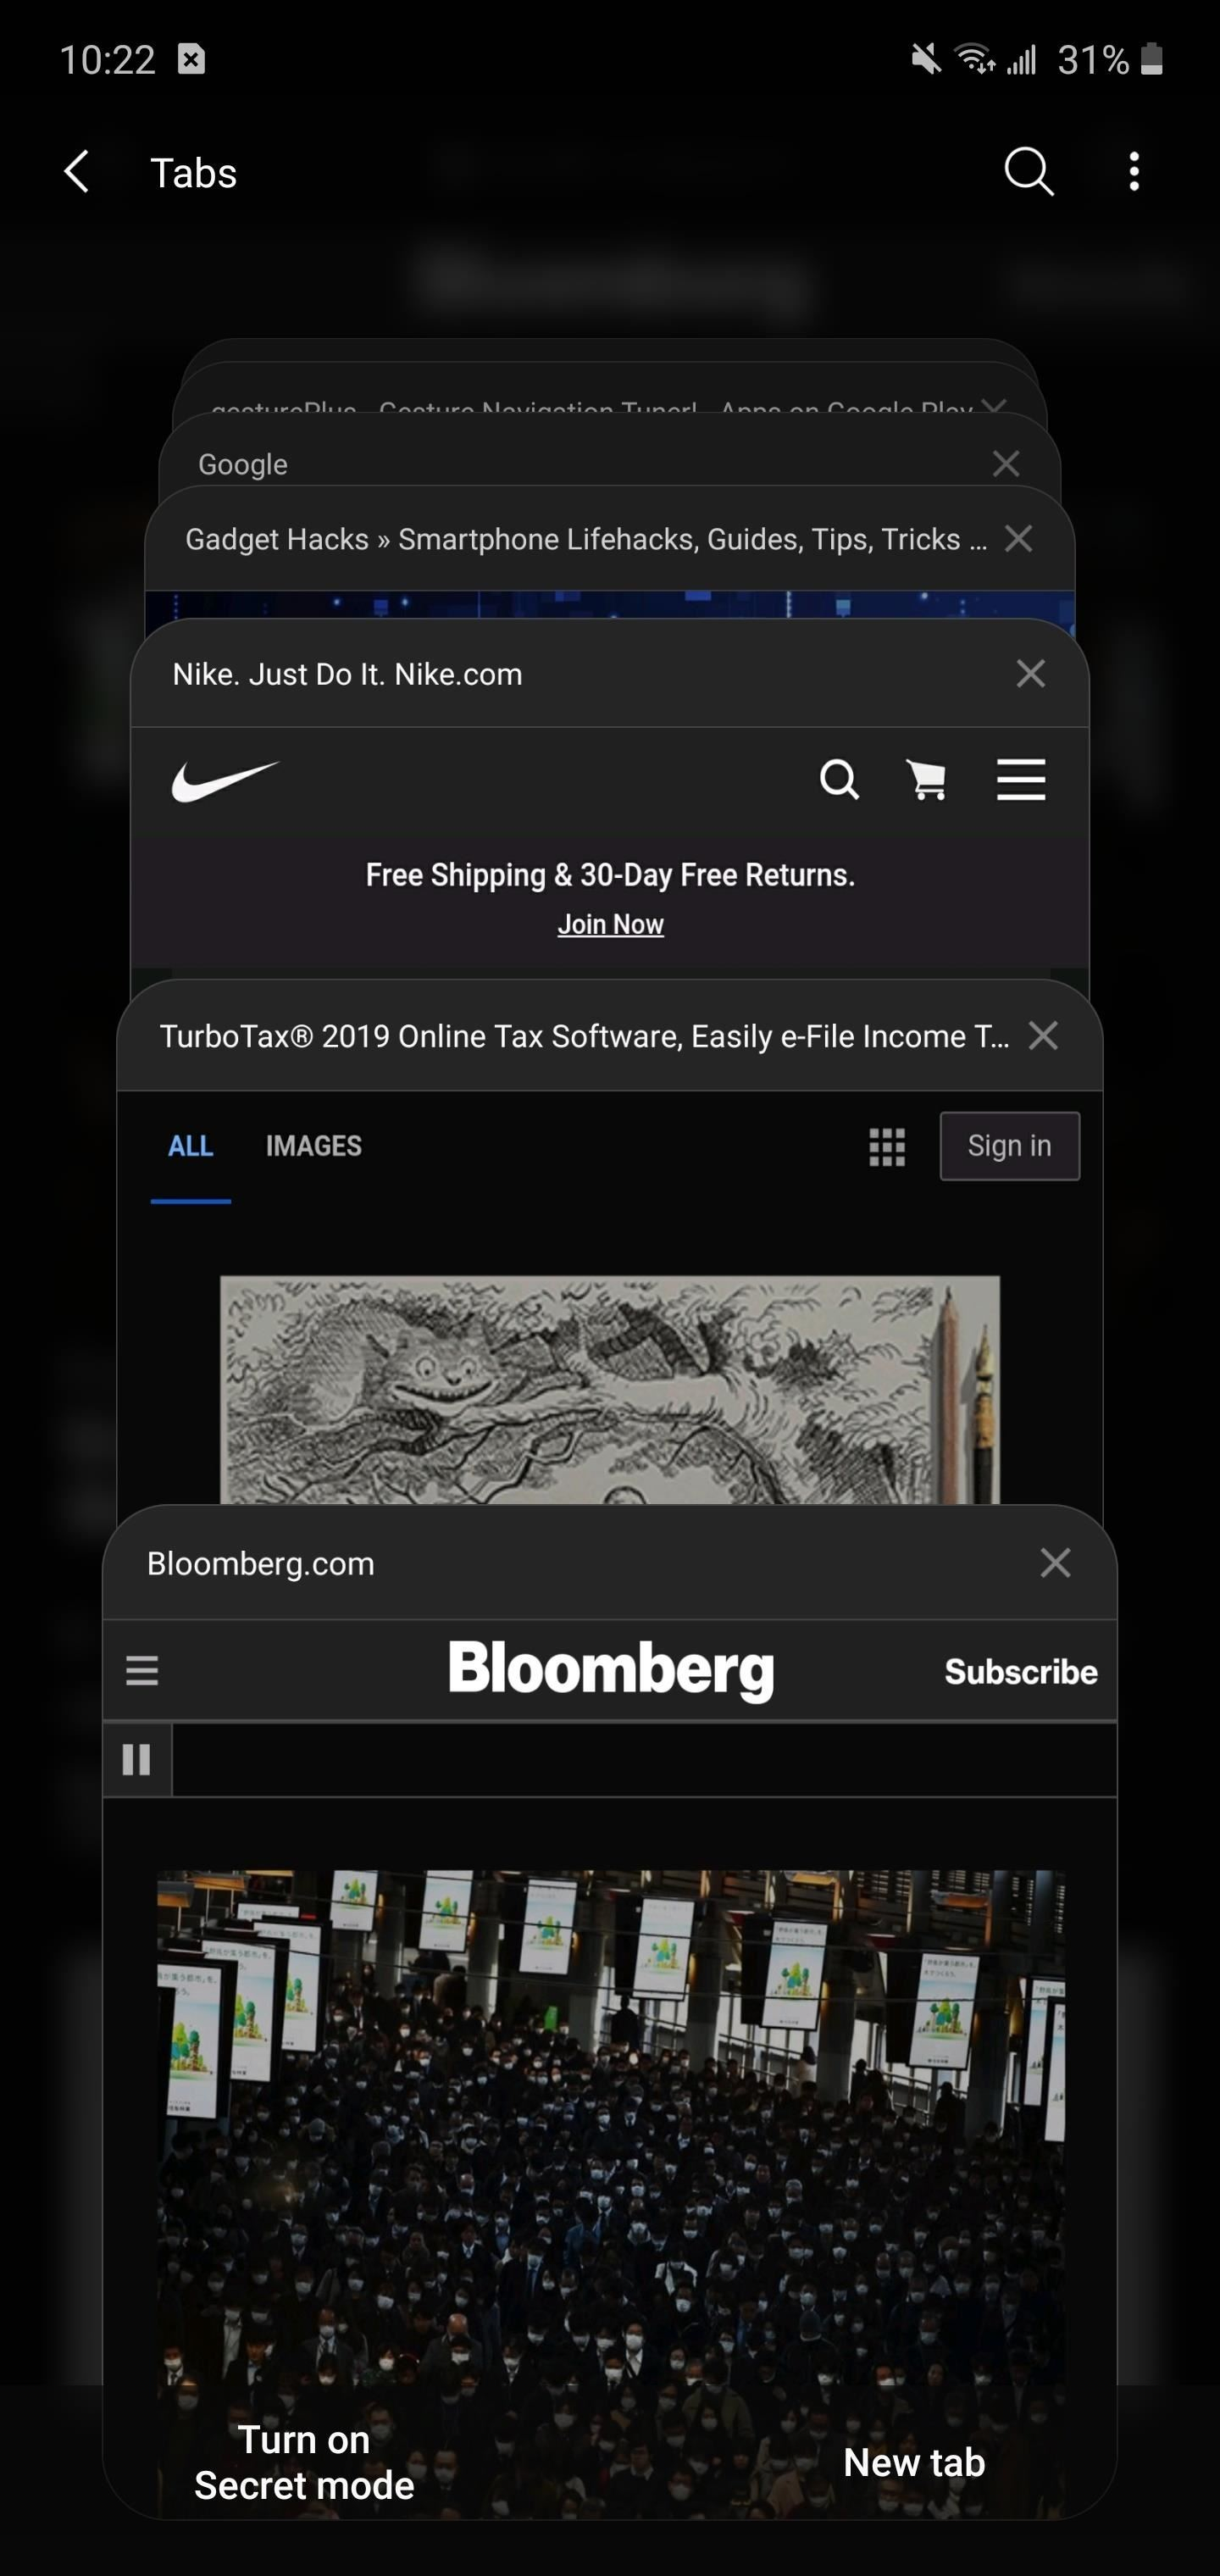 YSK: There's an Easy Way to Change Samsung's Tab Switcher into a Tidy List View